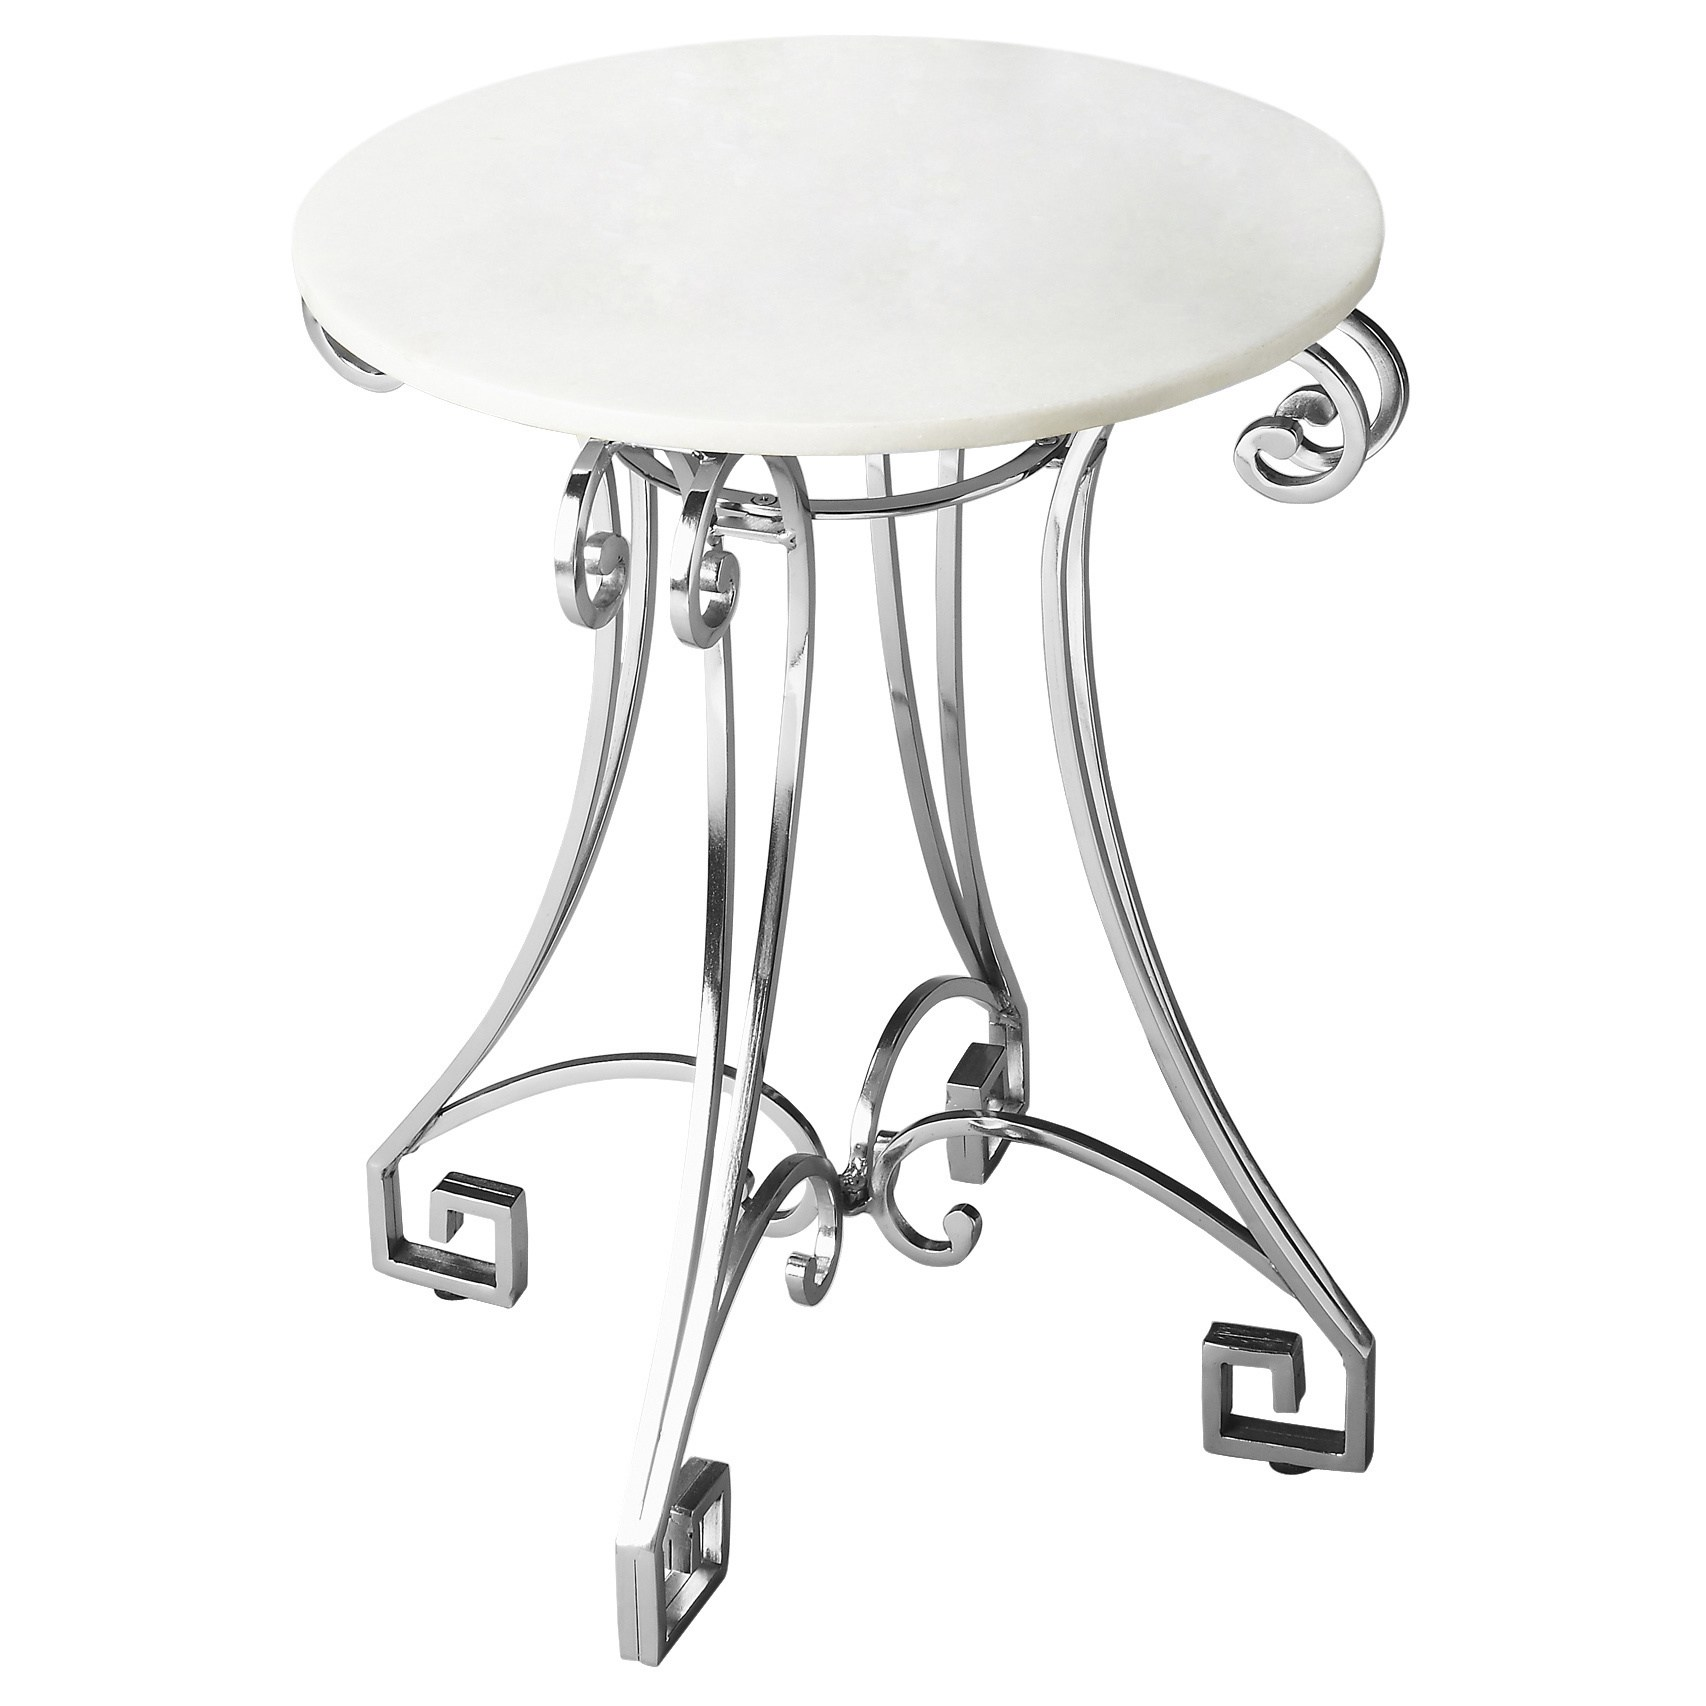 handmade white marble top silverton iron base end table marbletop accent free shipping today high bamboo coffee brass legs for small dark wood telephone solid tables green bedside